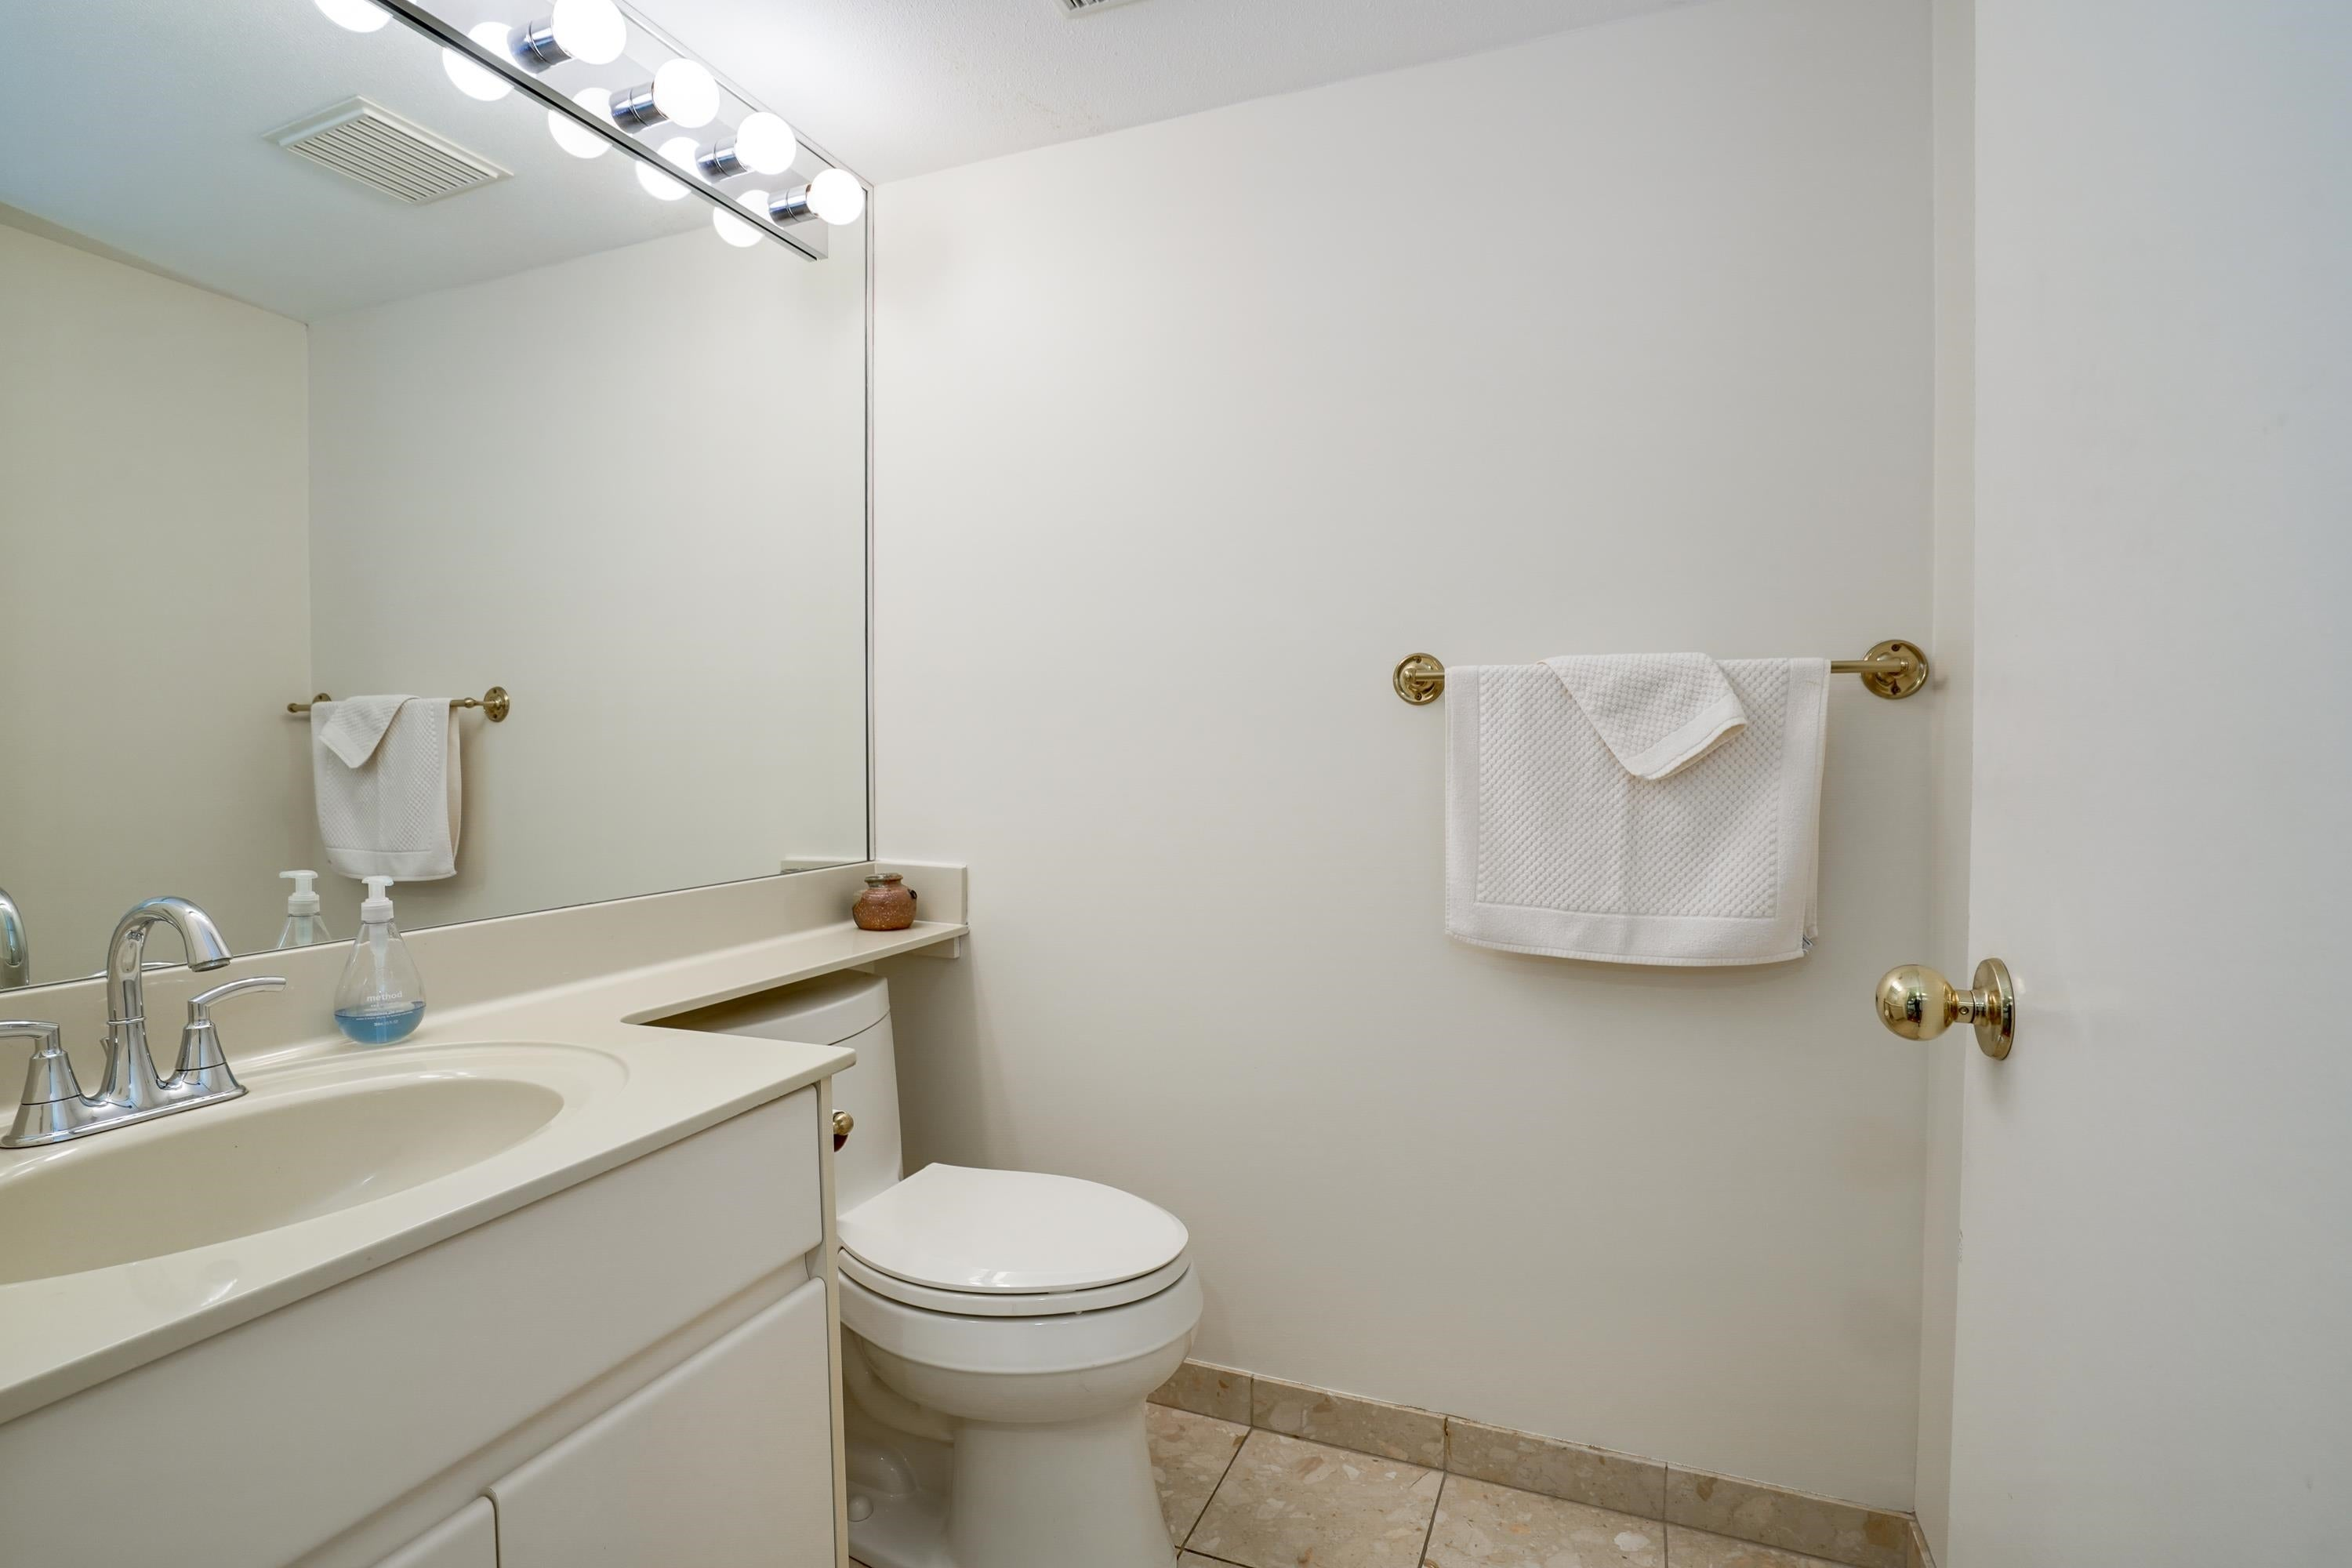 405 168 CHADWICK COURT - Lower Lonsdale Apartment/Condo for sale, 3 Bedrooms (R2619951) - #19